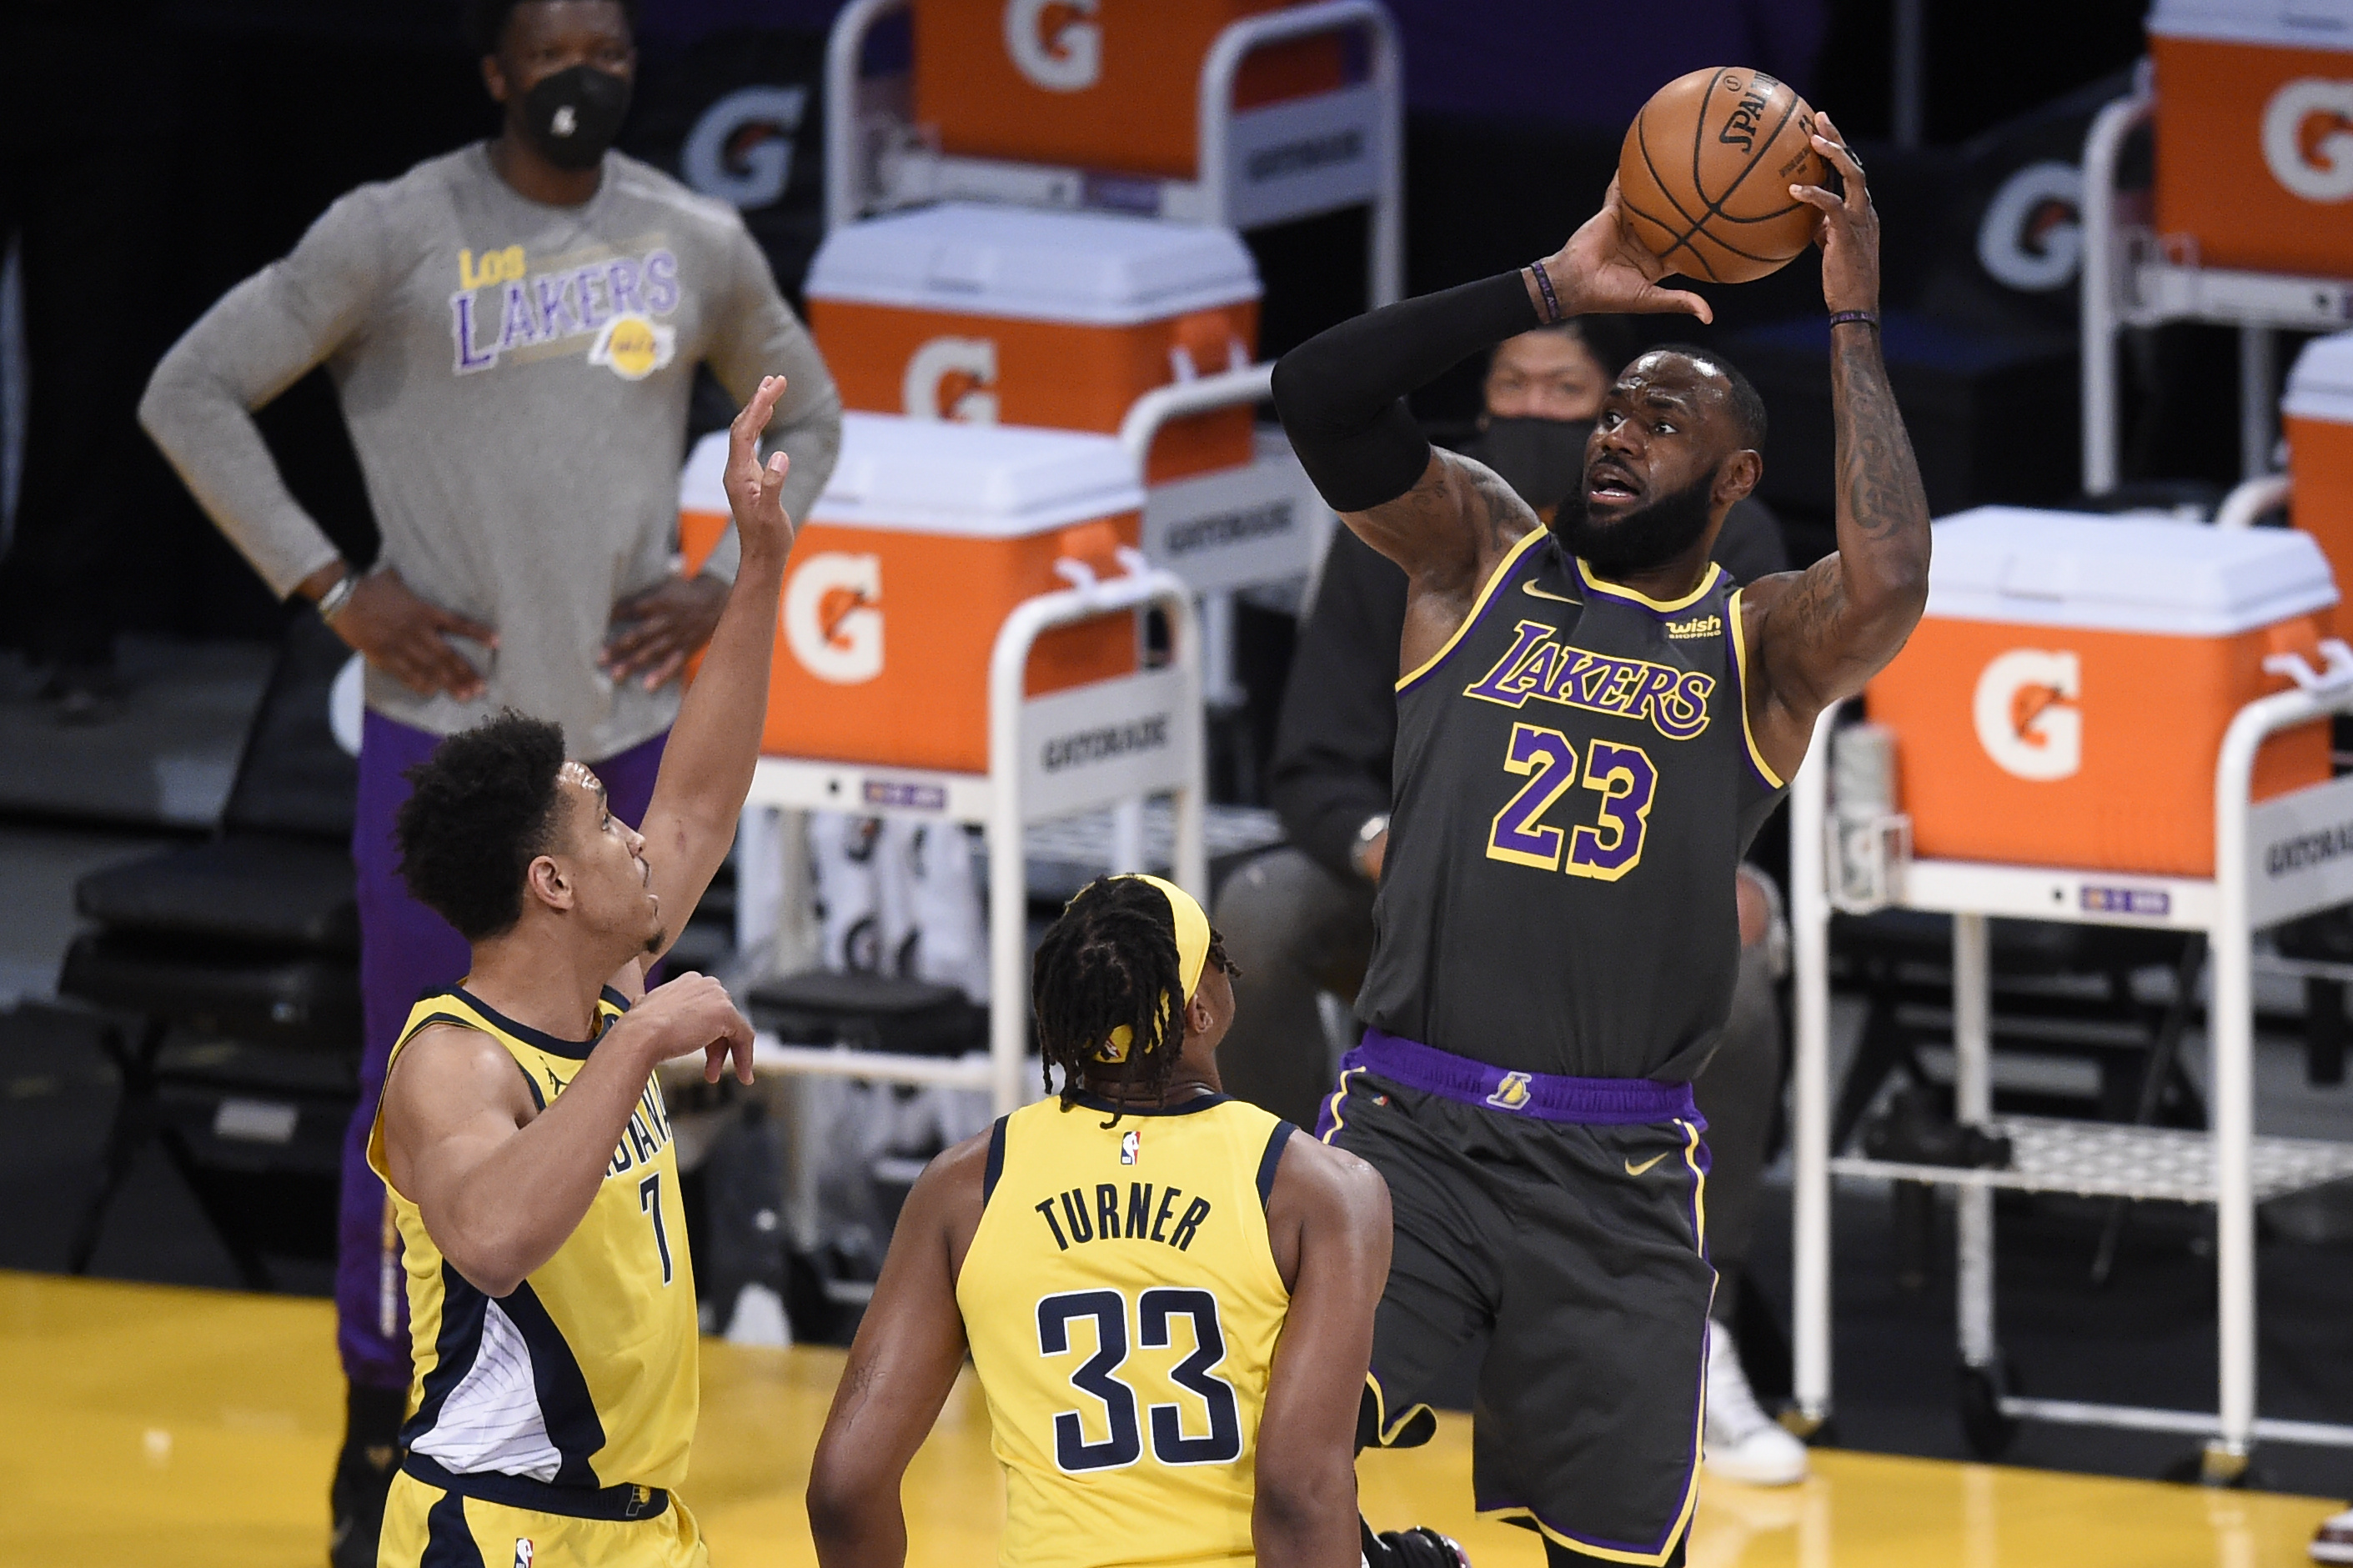 Mar 12, 2021; Los Angeles, California, USA; Los Angeles Lakers forward LeBron James (23) shoots while Indiana Pacers guard Malcolm Brogdon (7) defends during the first half at Staples Center. Mandatory Credit: Kelvin Kuo-USA TODAY Sports